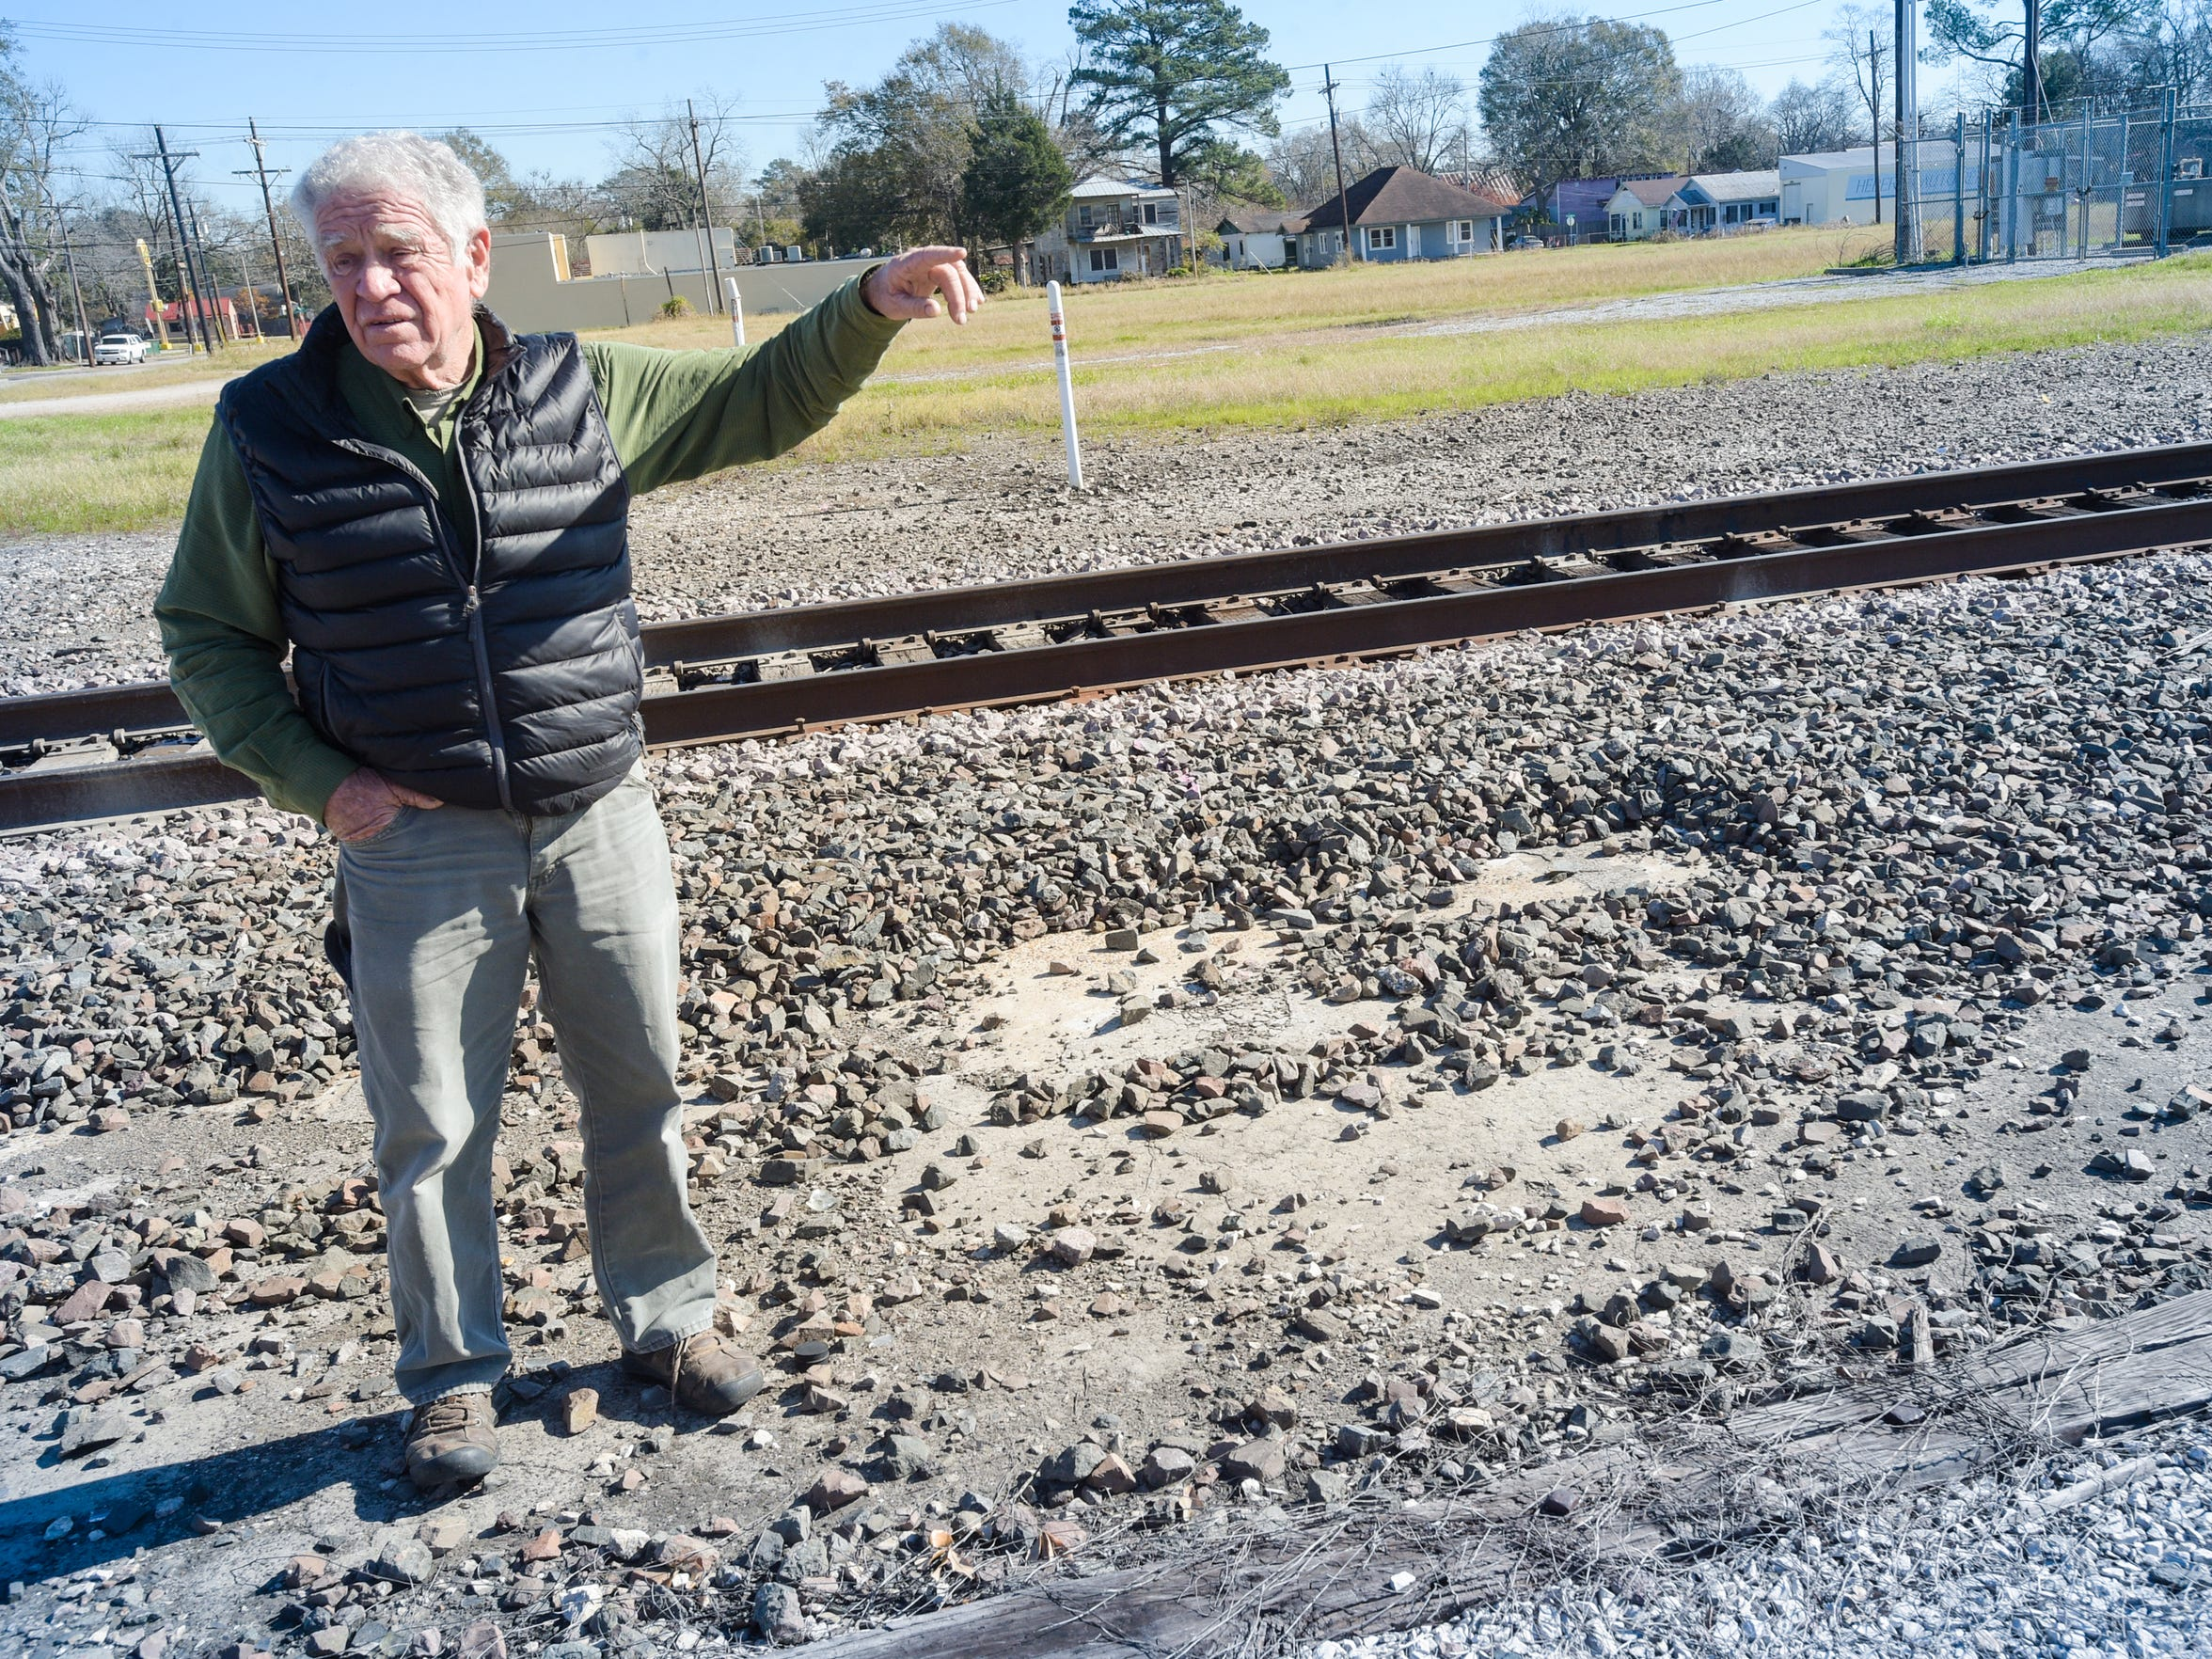 Harold Schoeffler believes an old rail yard maintenance